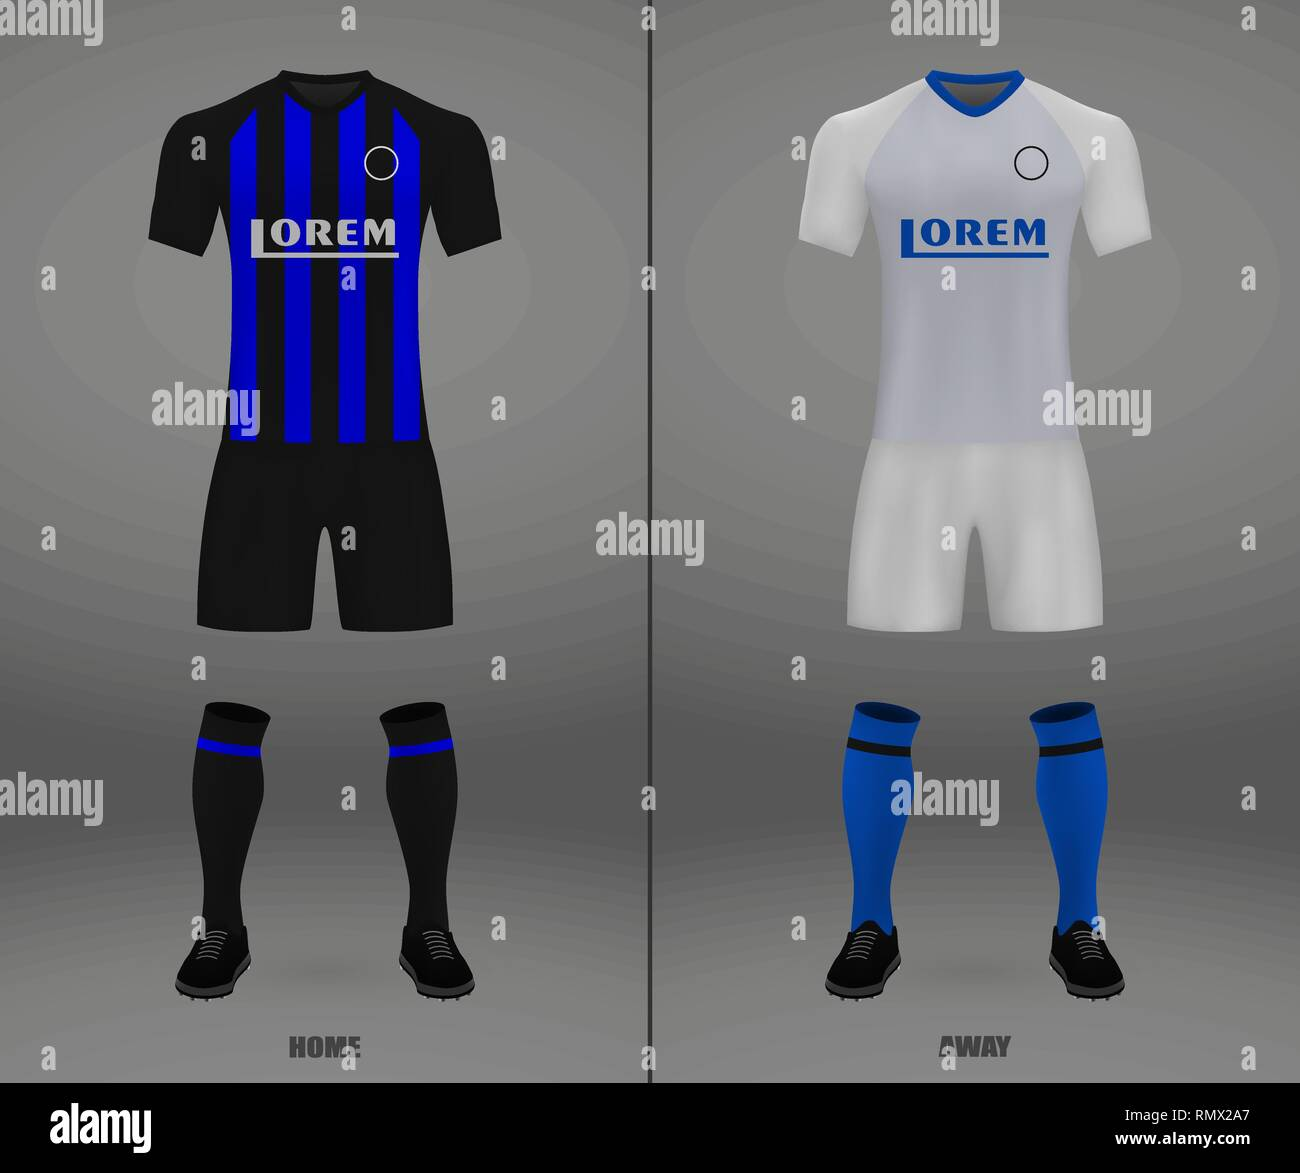 42449a7c7 Home Of Inter Milan Stock Photos   Home Of Inter Milan Stock Images ...